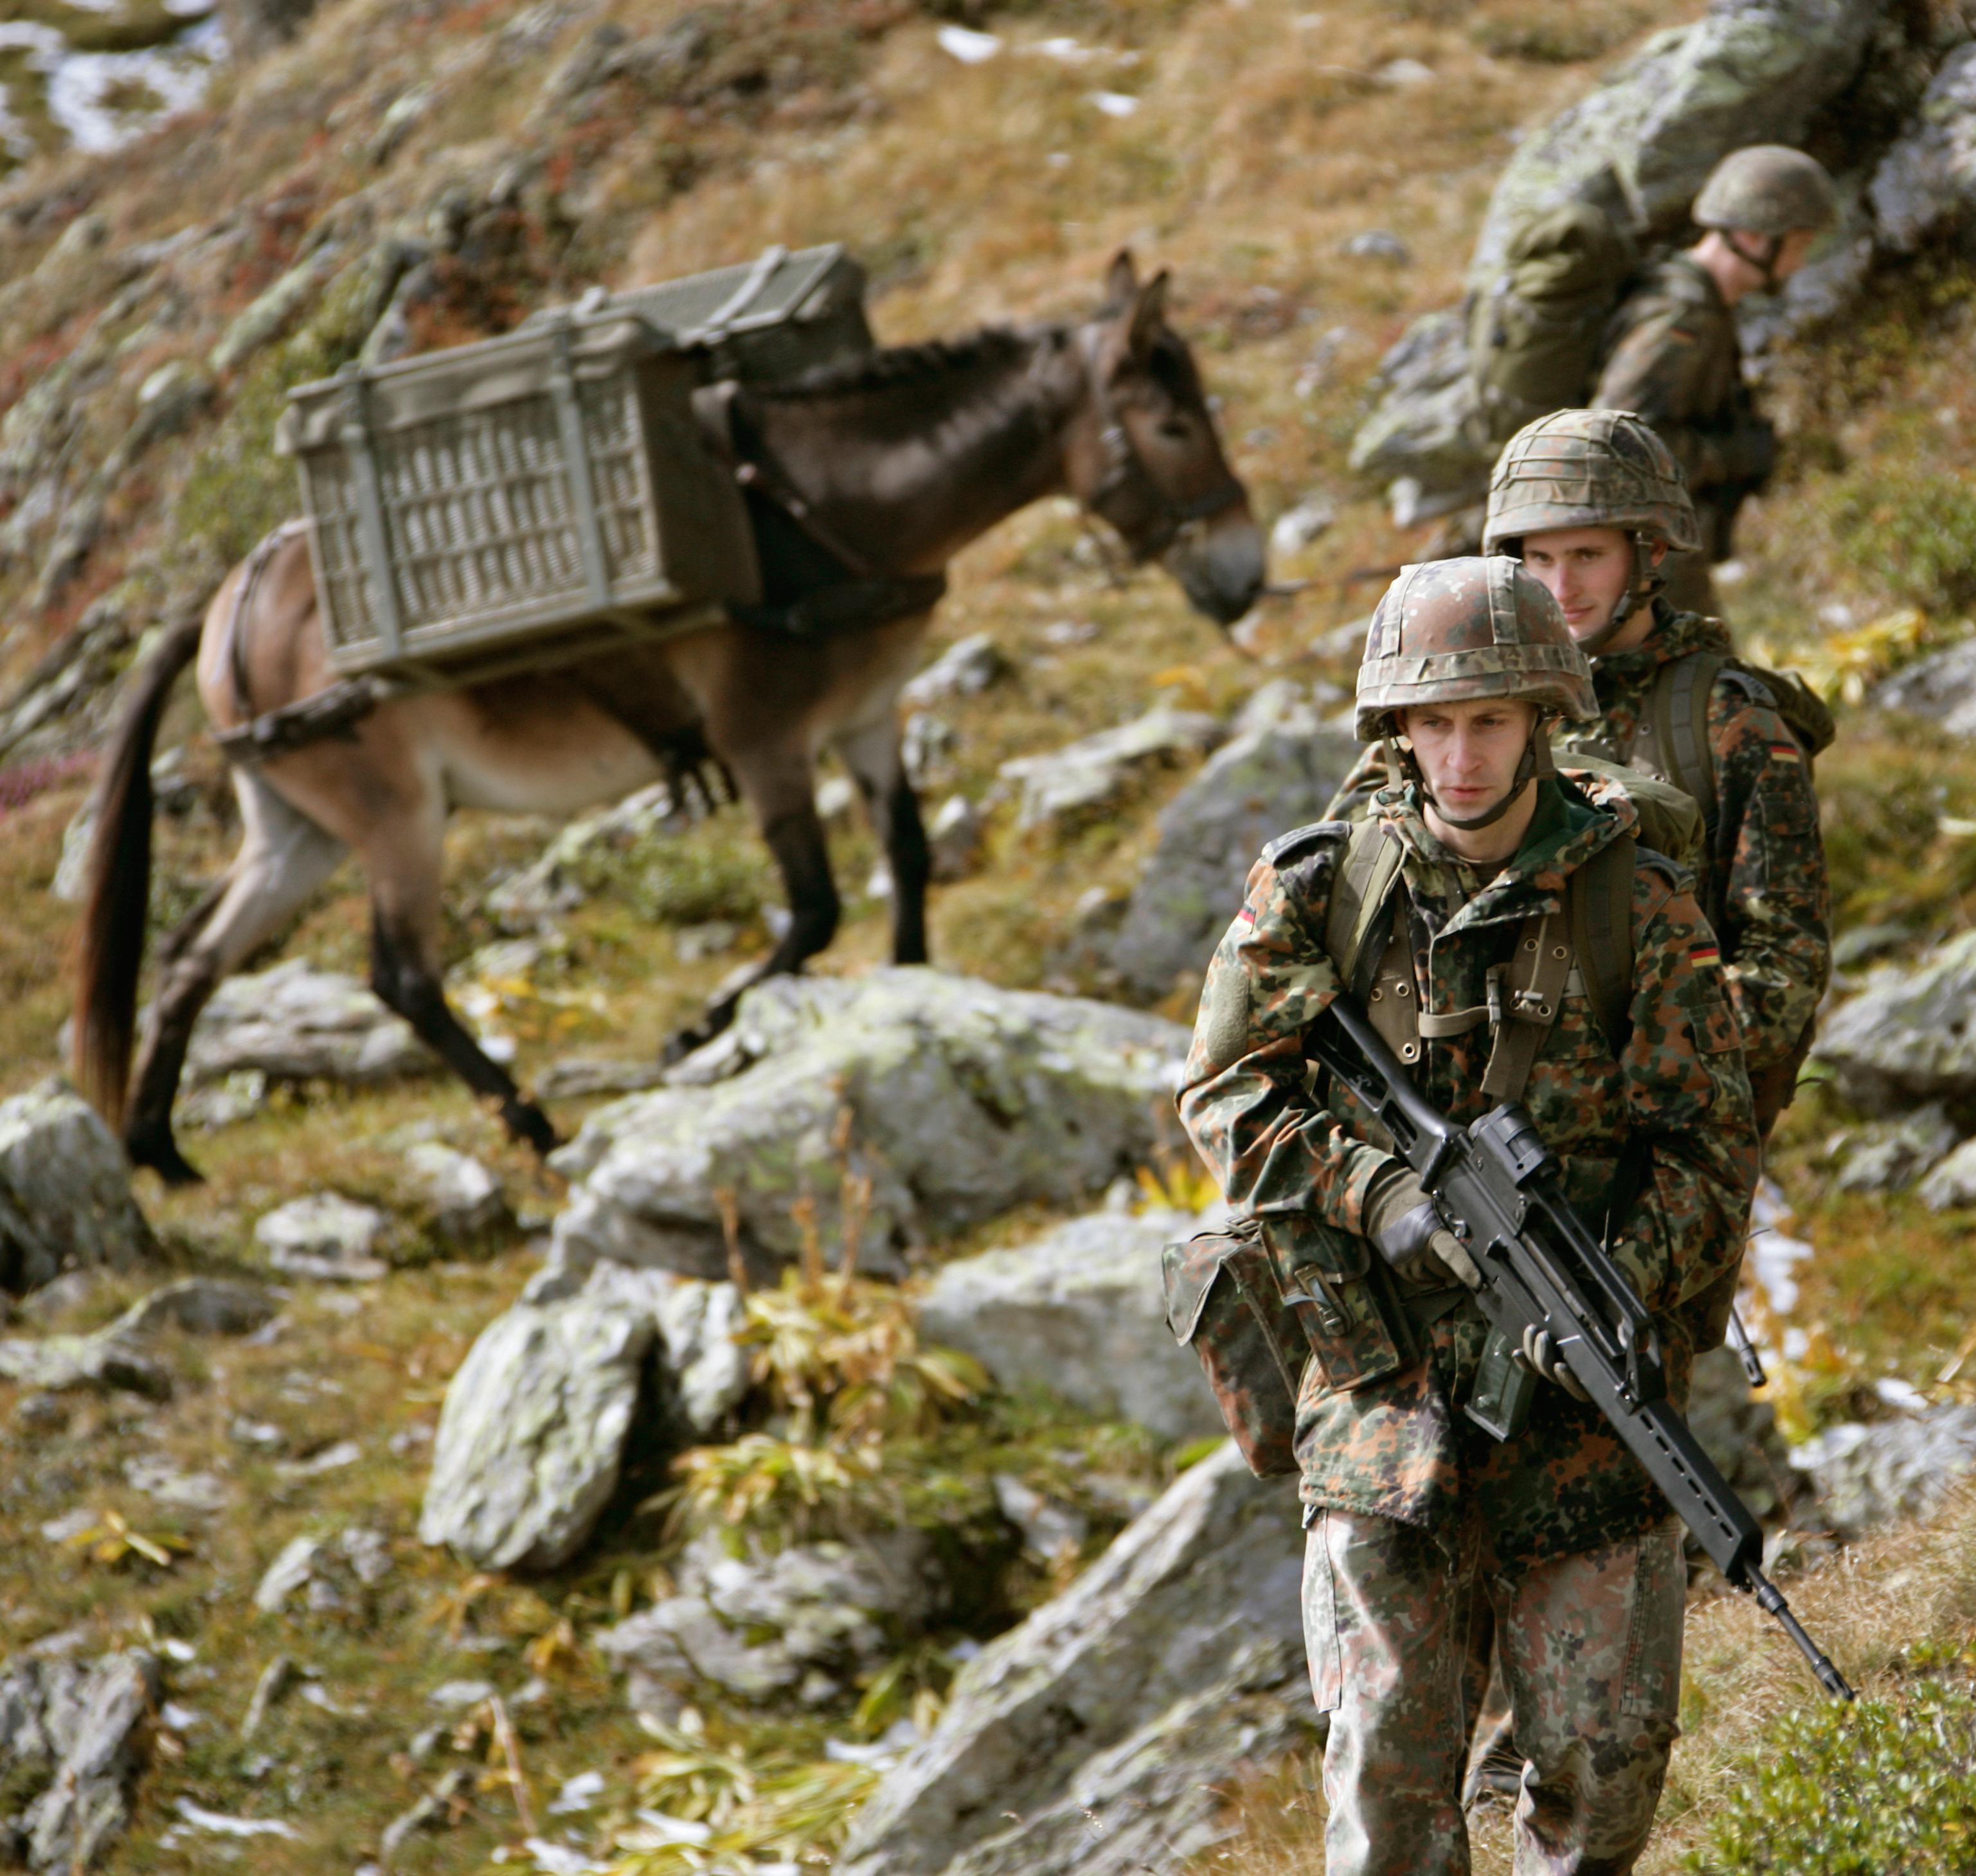 German Gebirgsjäger (Specialized Mountain Infantry) and their tactical transport mule. Vehicles such as bikes or ATVs (Quads) ar